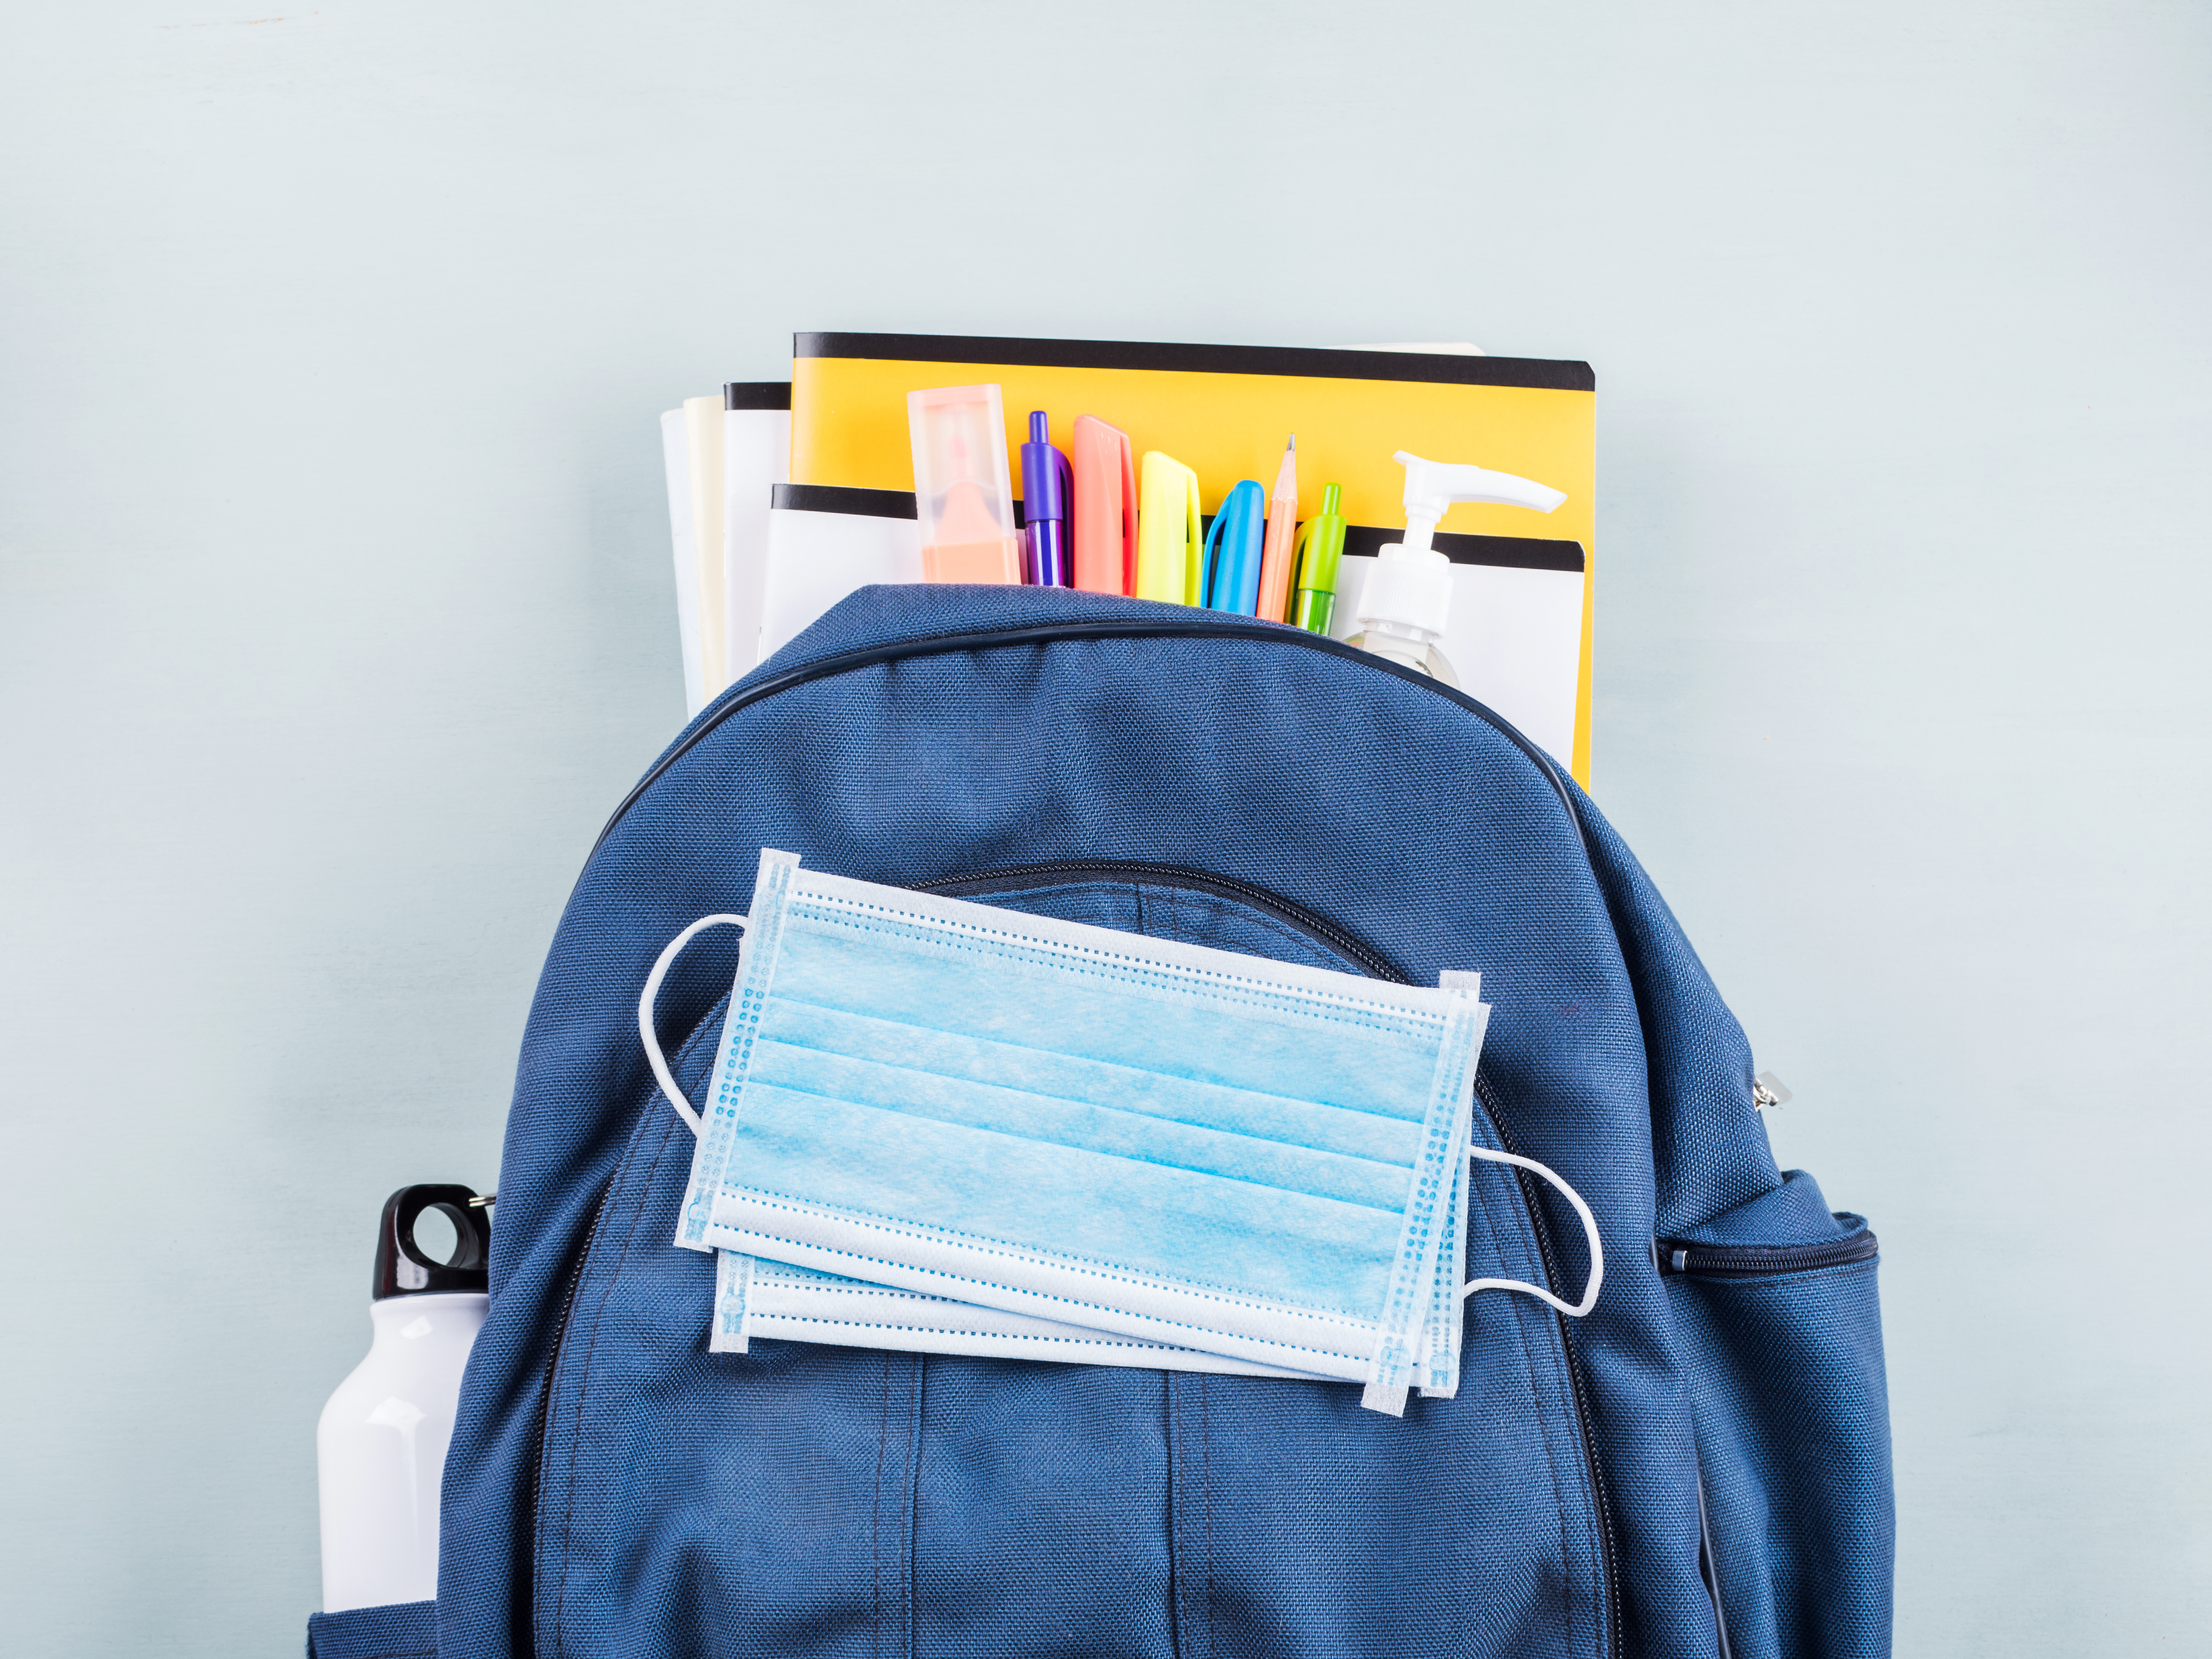 A school backpack with a disposable mask resting on top